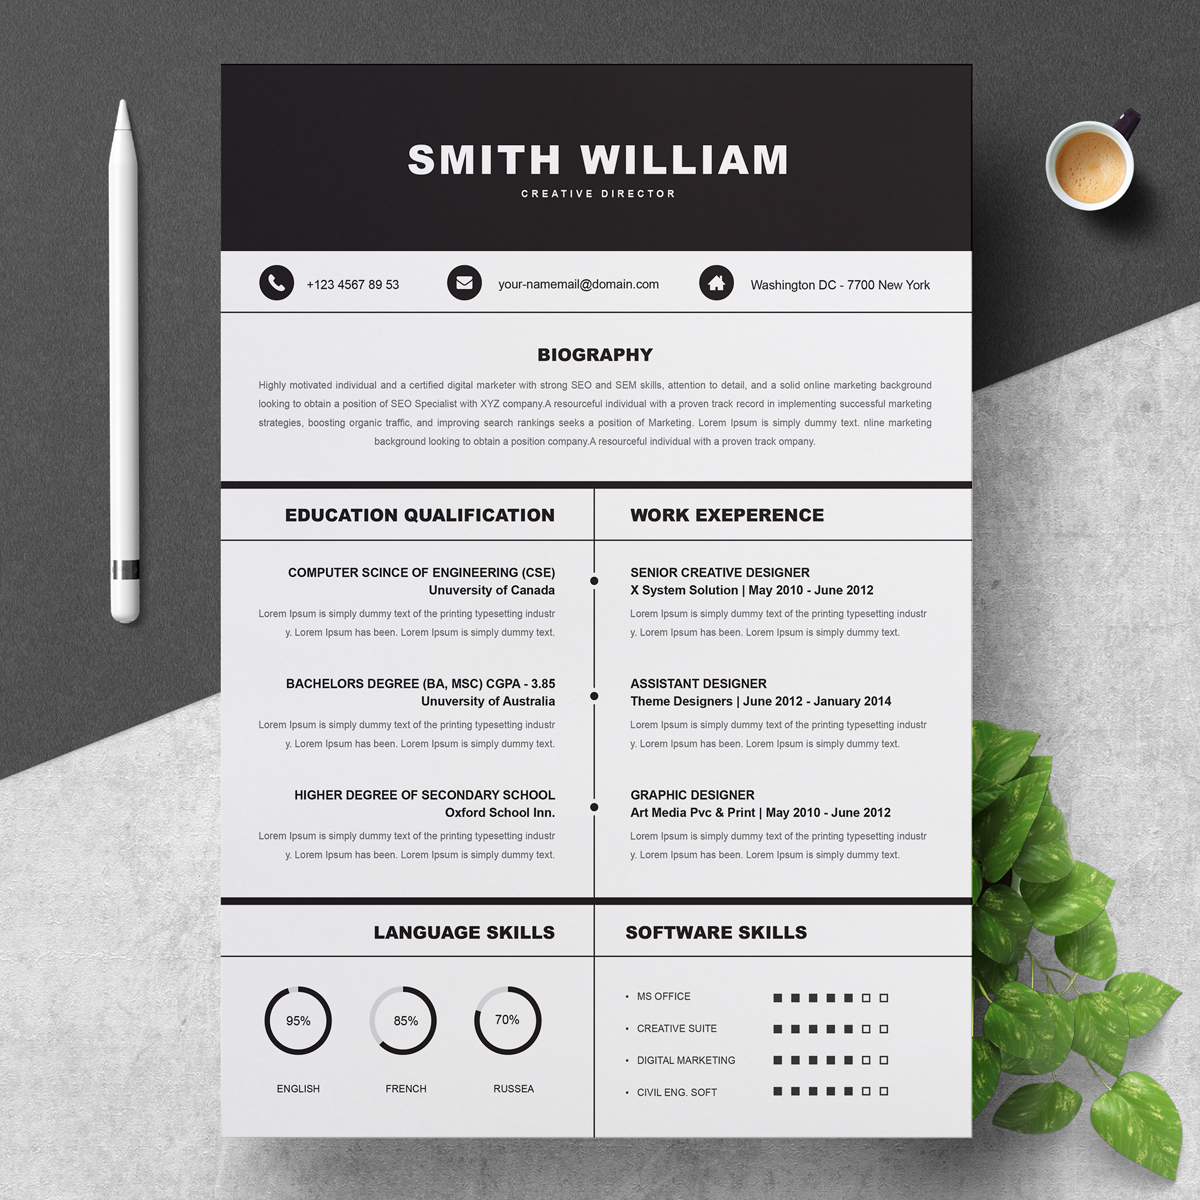 smith williams resume template  78492